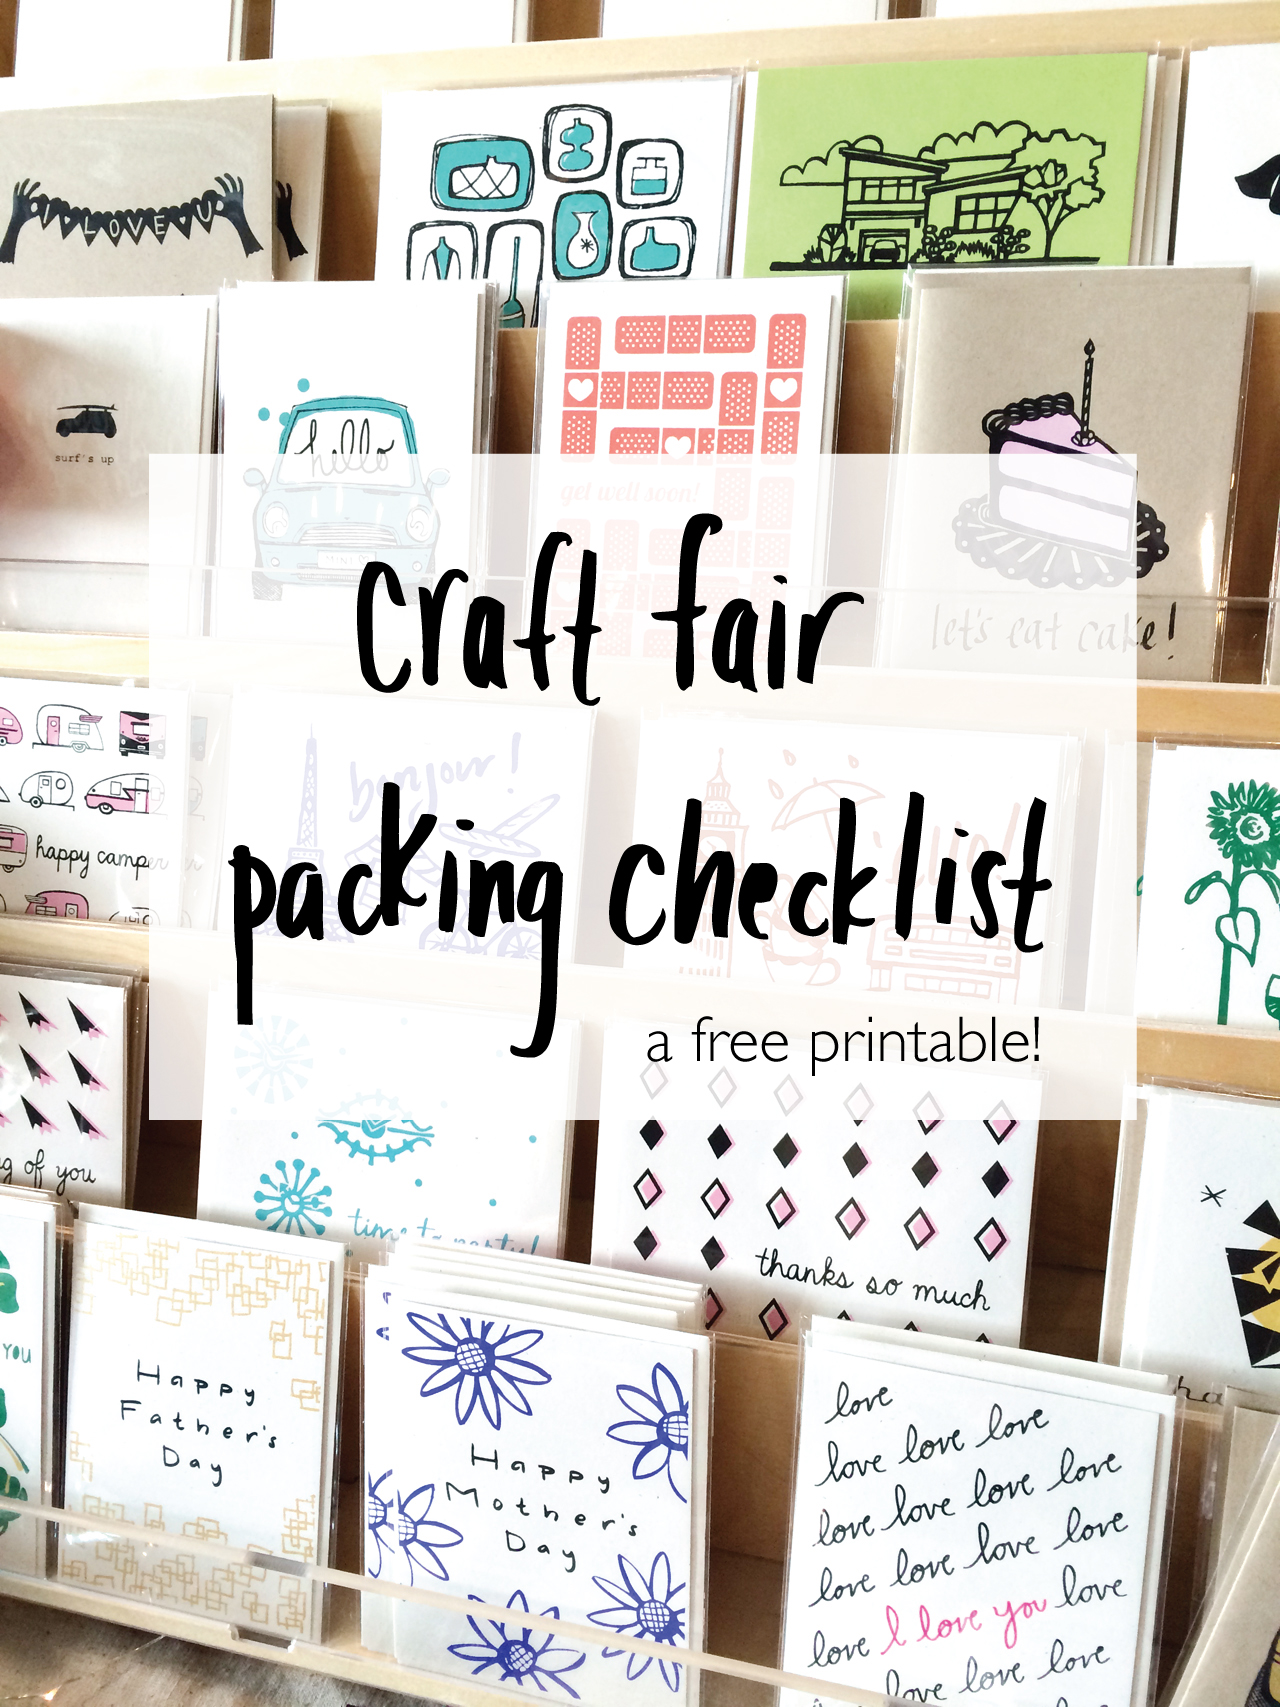 Craft Fair Packing Checklist - a free printable!